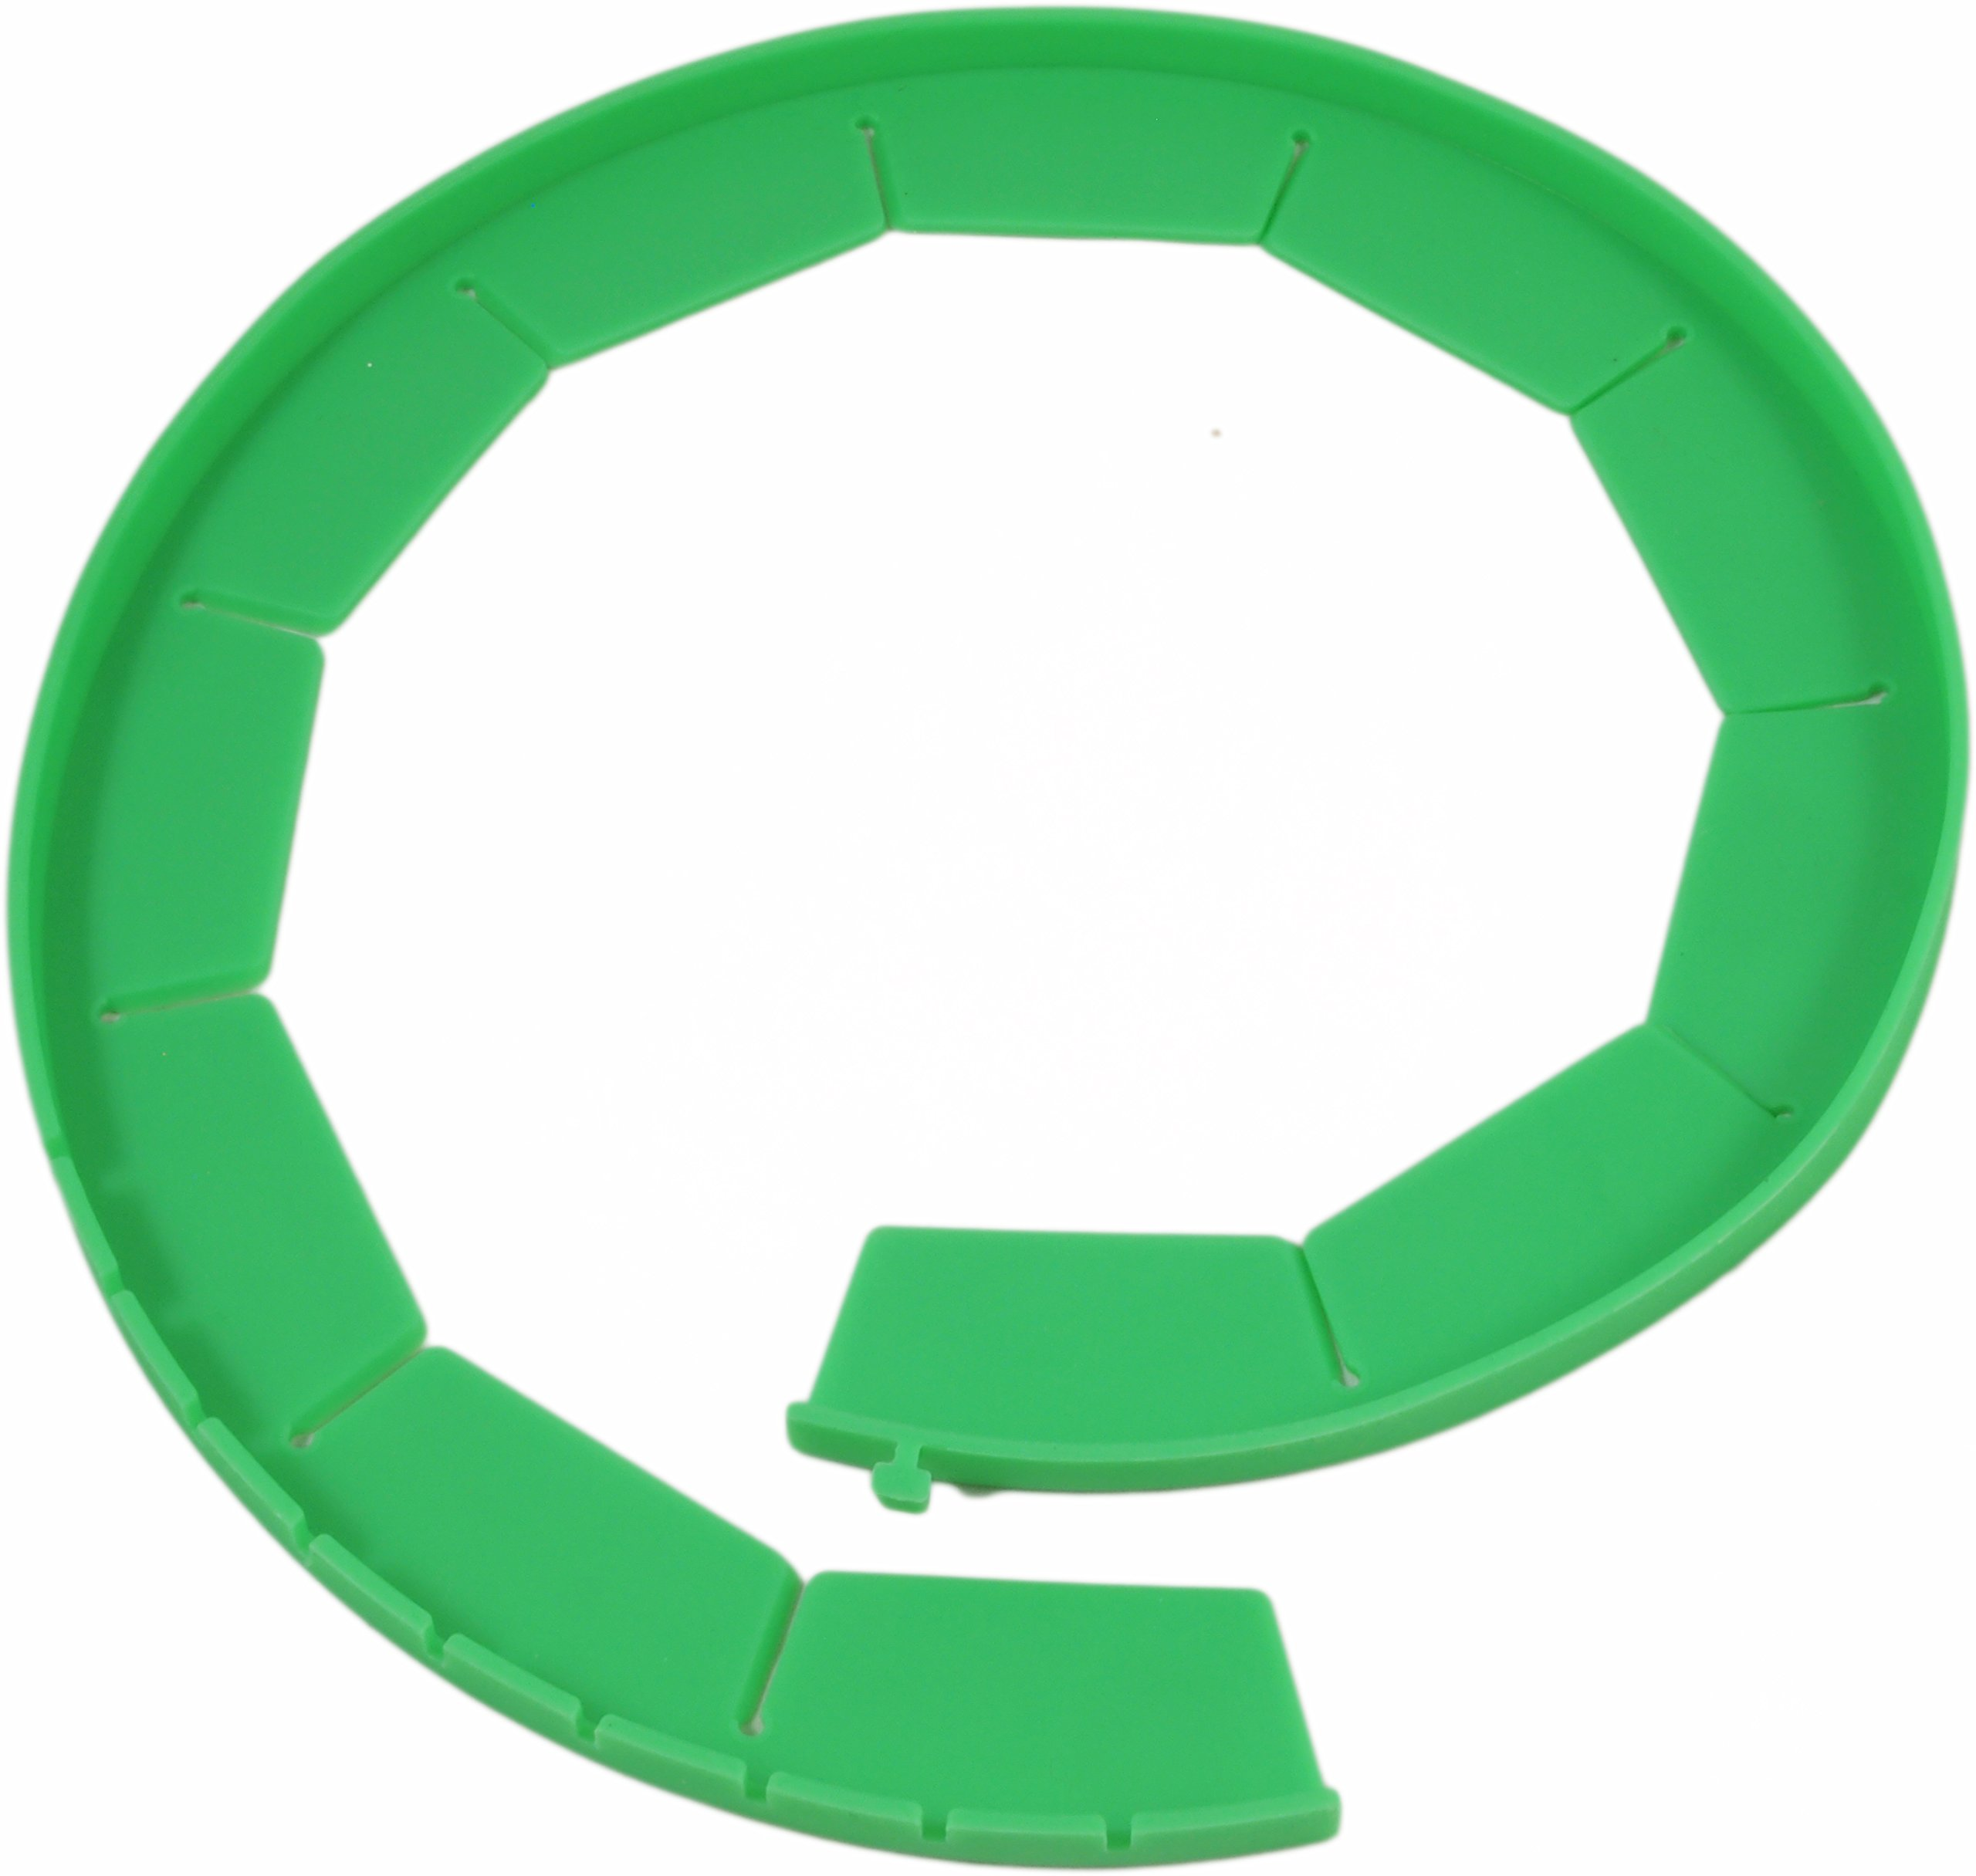 Silicone Pie Crust Shields (2 pack), Adjustable Pie Protectors, Green by Cornucopia Brands (Image #5)